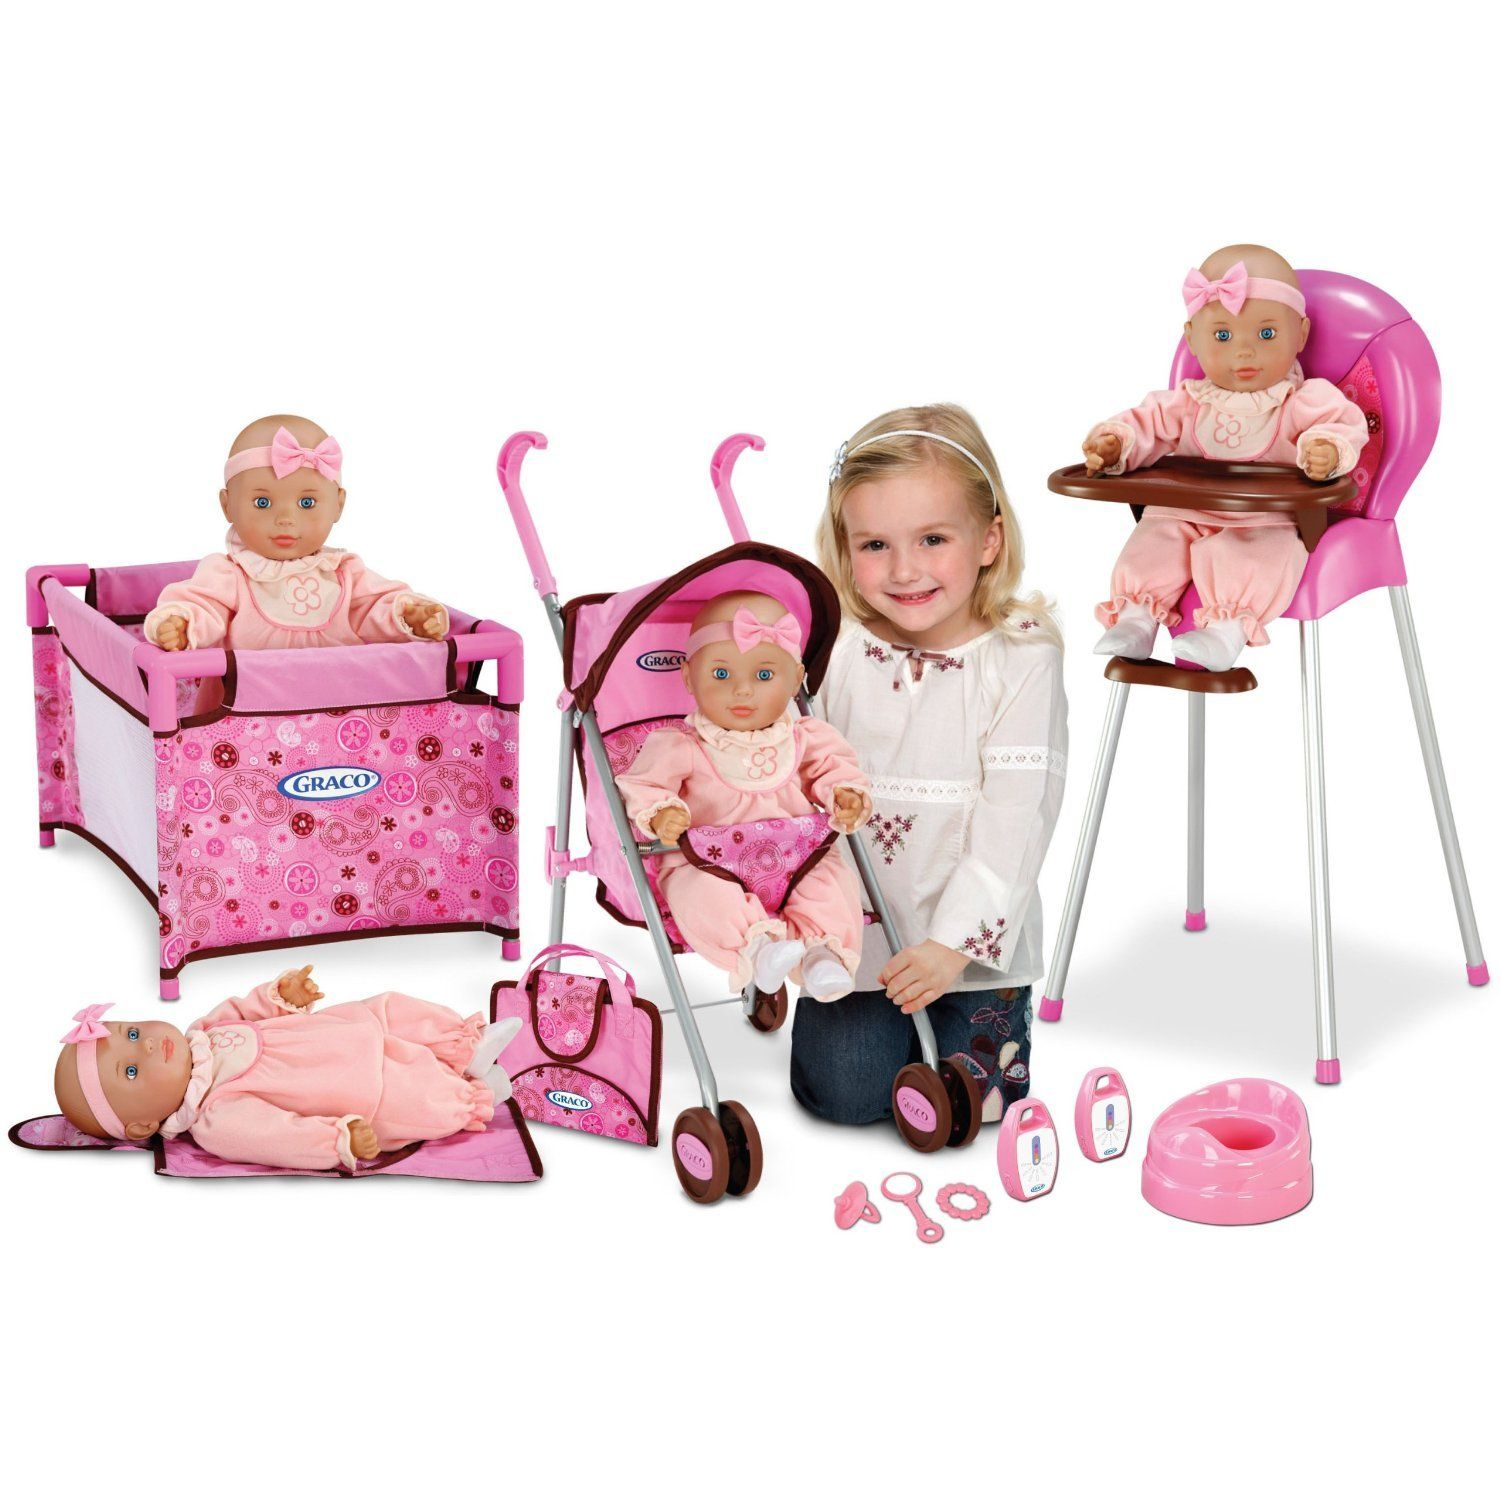 2014 RE Graco Baby Doll Playset Stroller